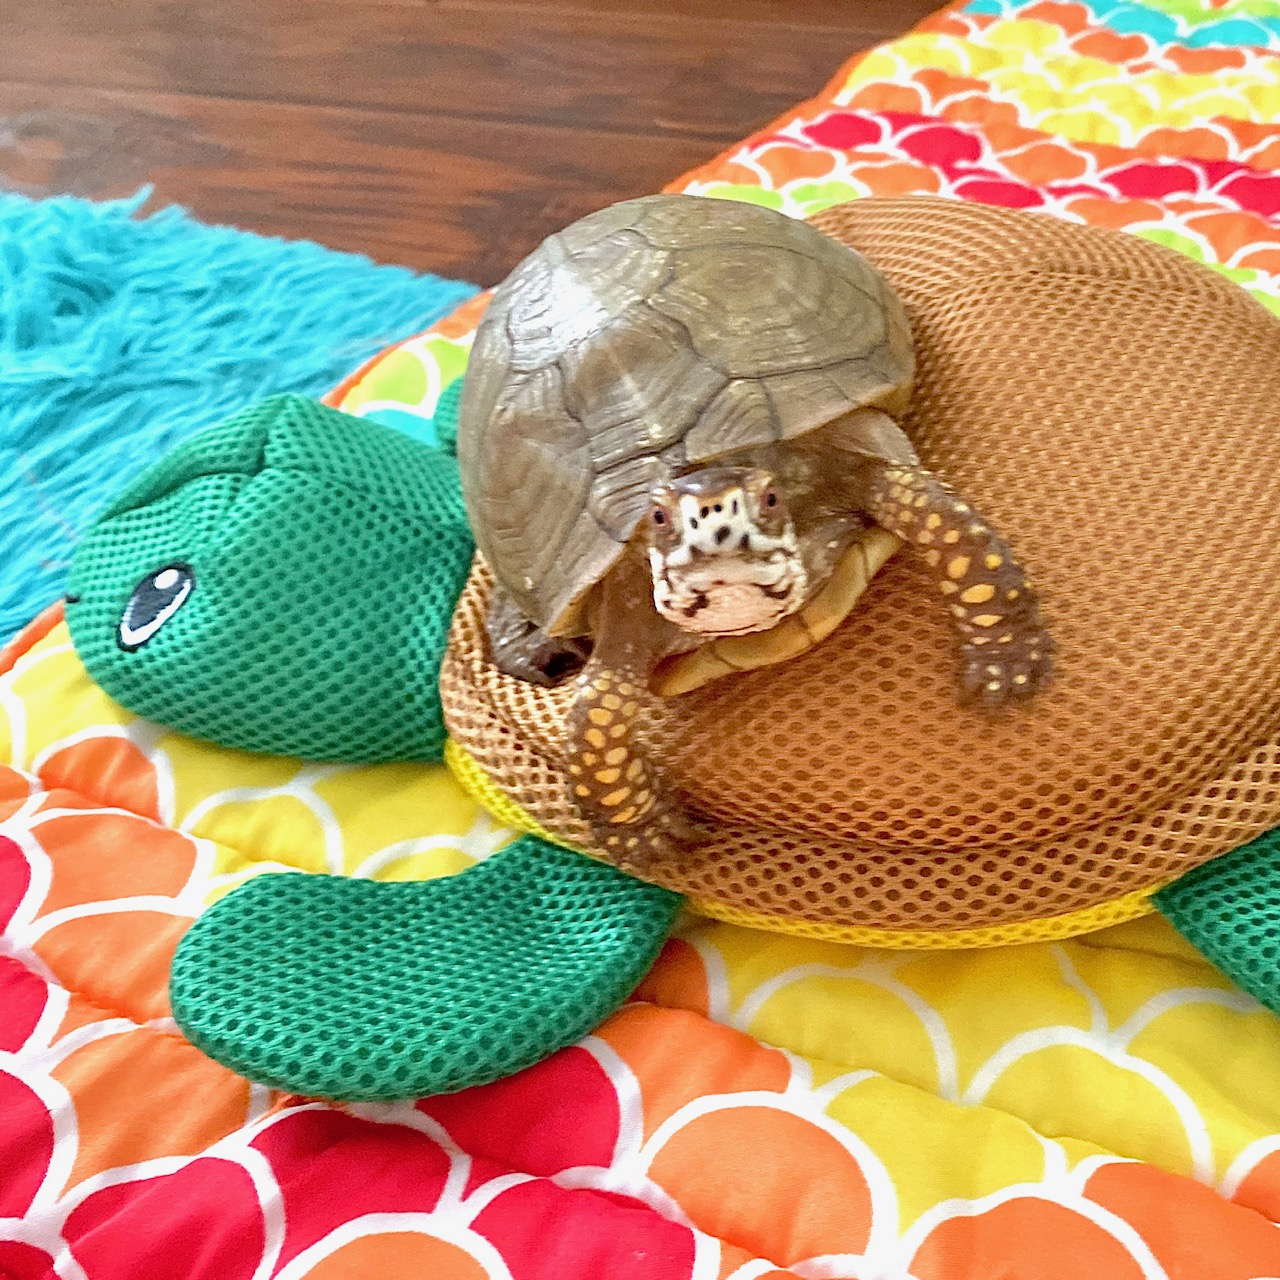 box turtle sits on toy turtle